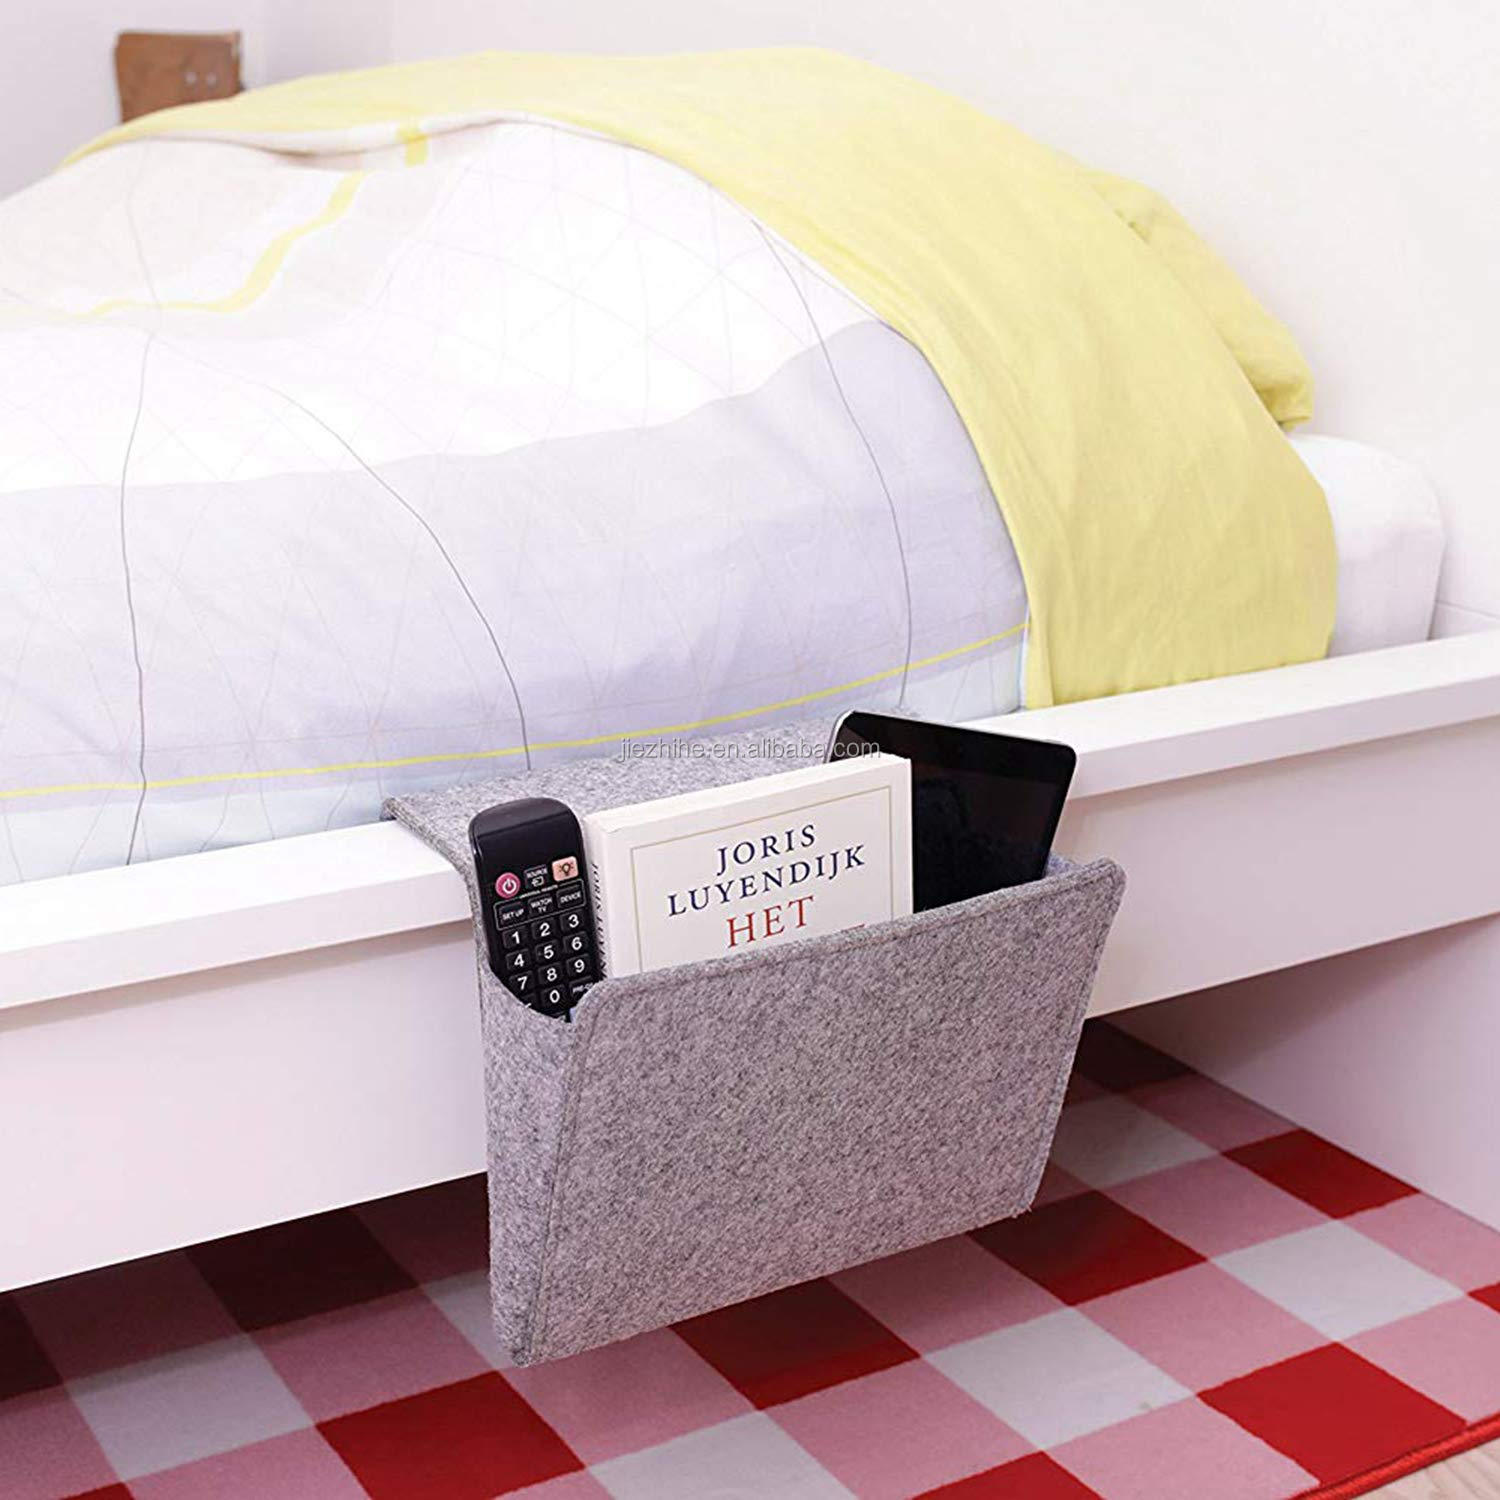 FeltBedside Caddy Opknoping Organizer Anti-Slip Tijdschrift Telefoon Tablet iPad Glas Houder voor Thuis Bed Rails SofaBunk B